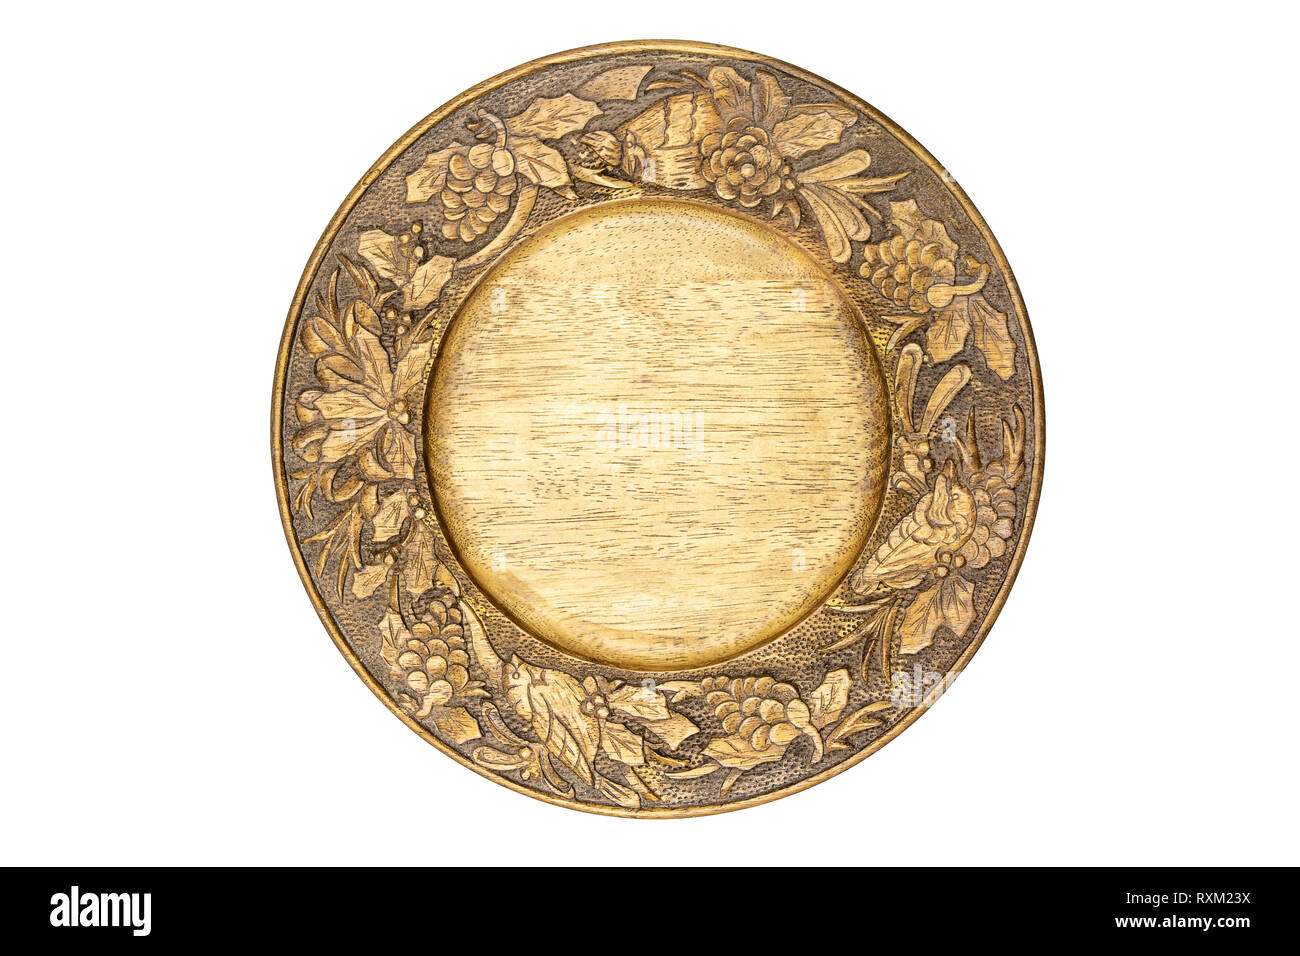 Wooden carving tray isolate on white background. - Stock Image